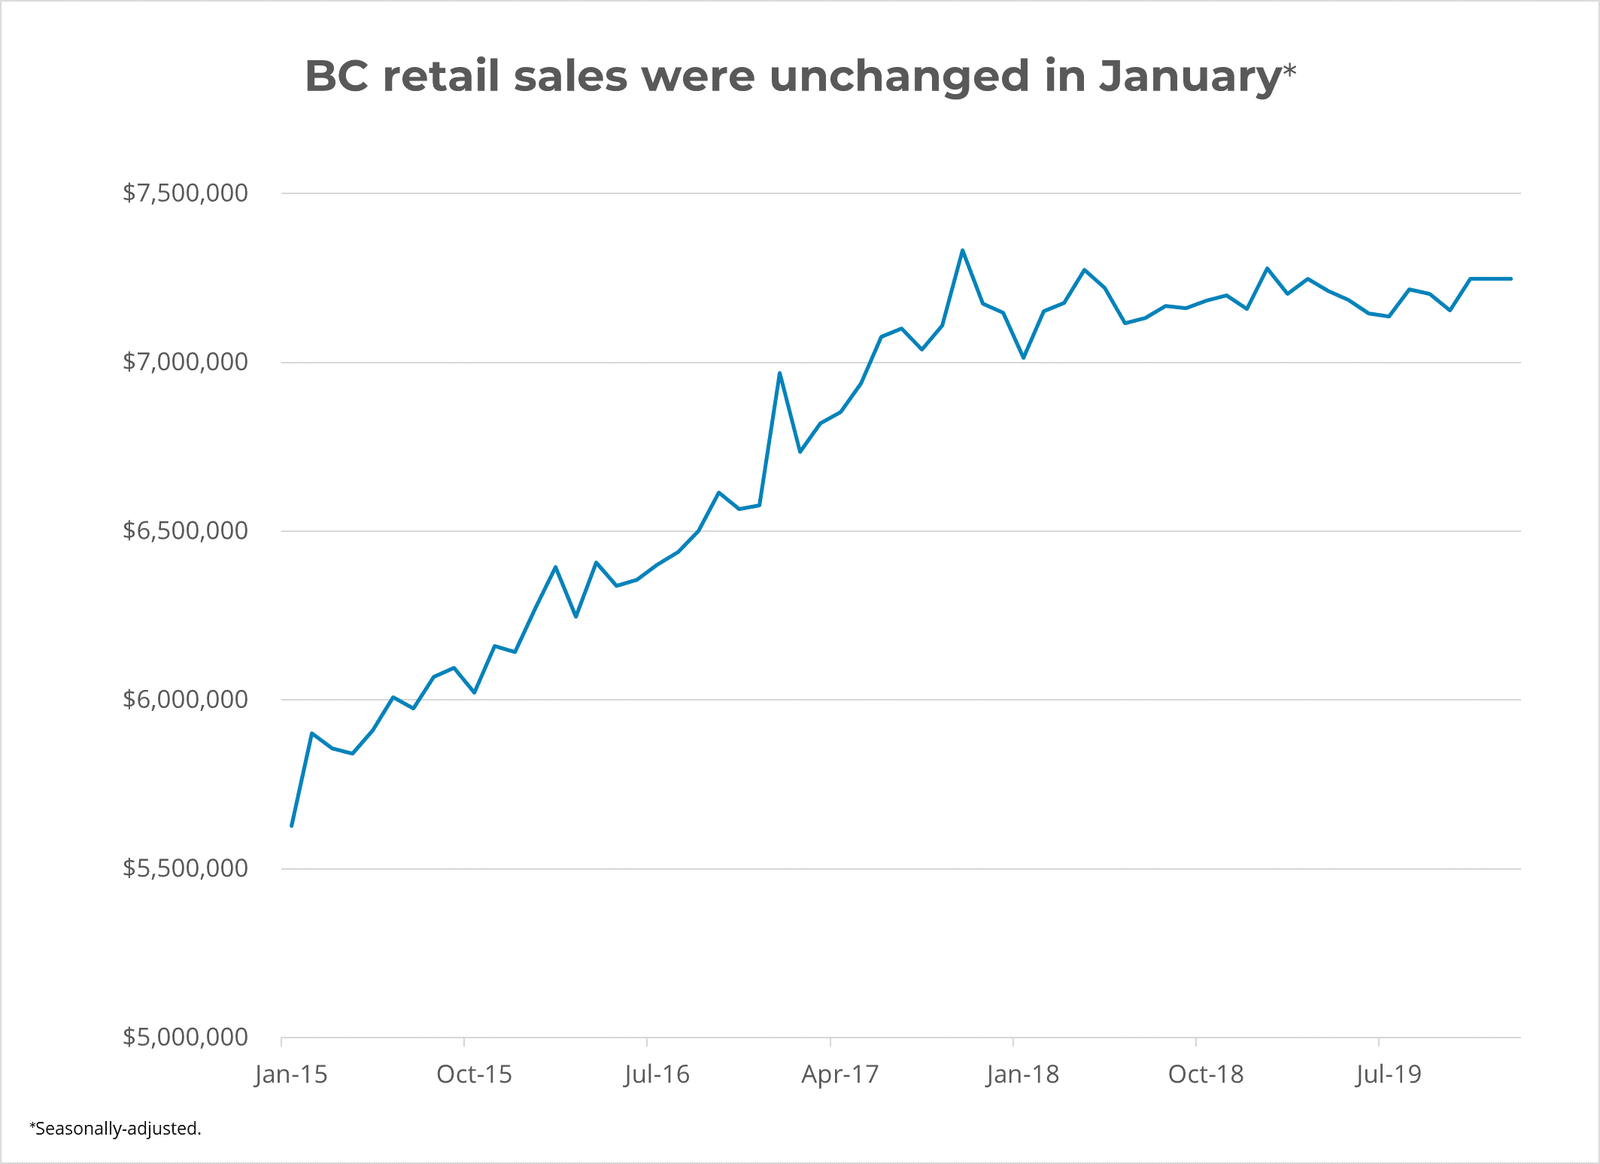 BC Real Estate Sales Unchanged in January